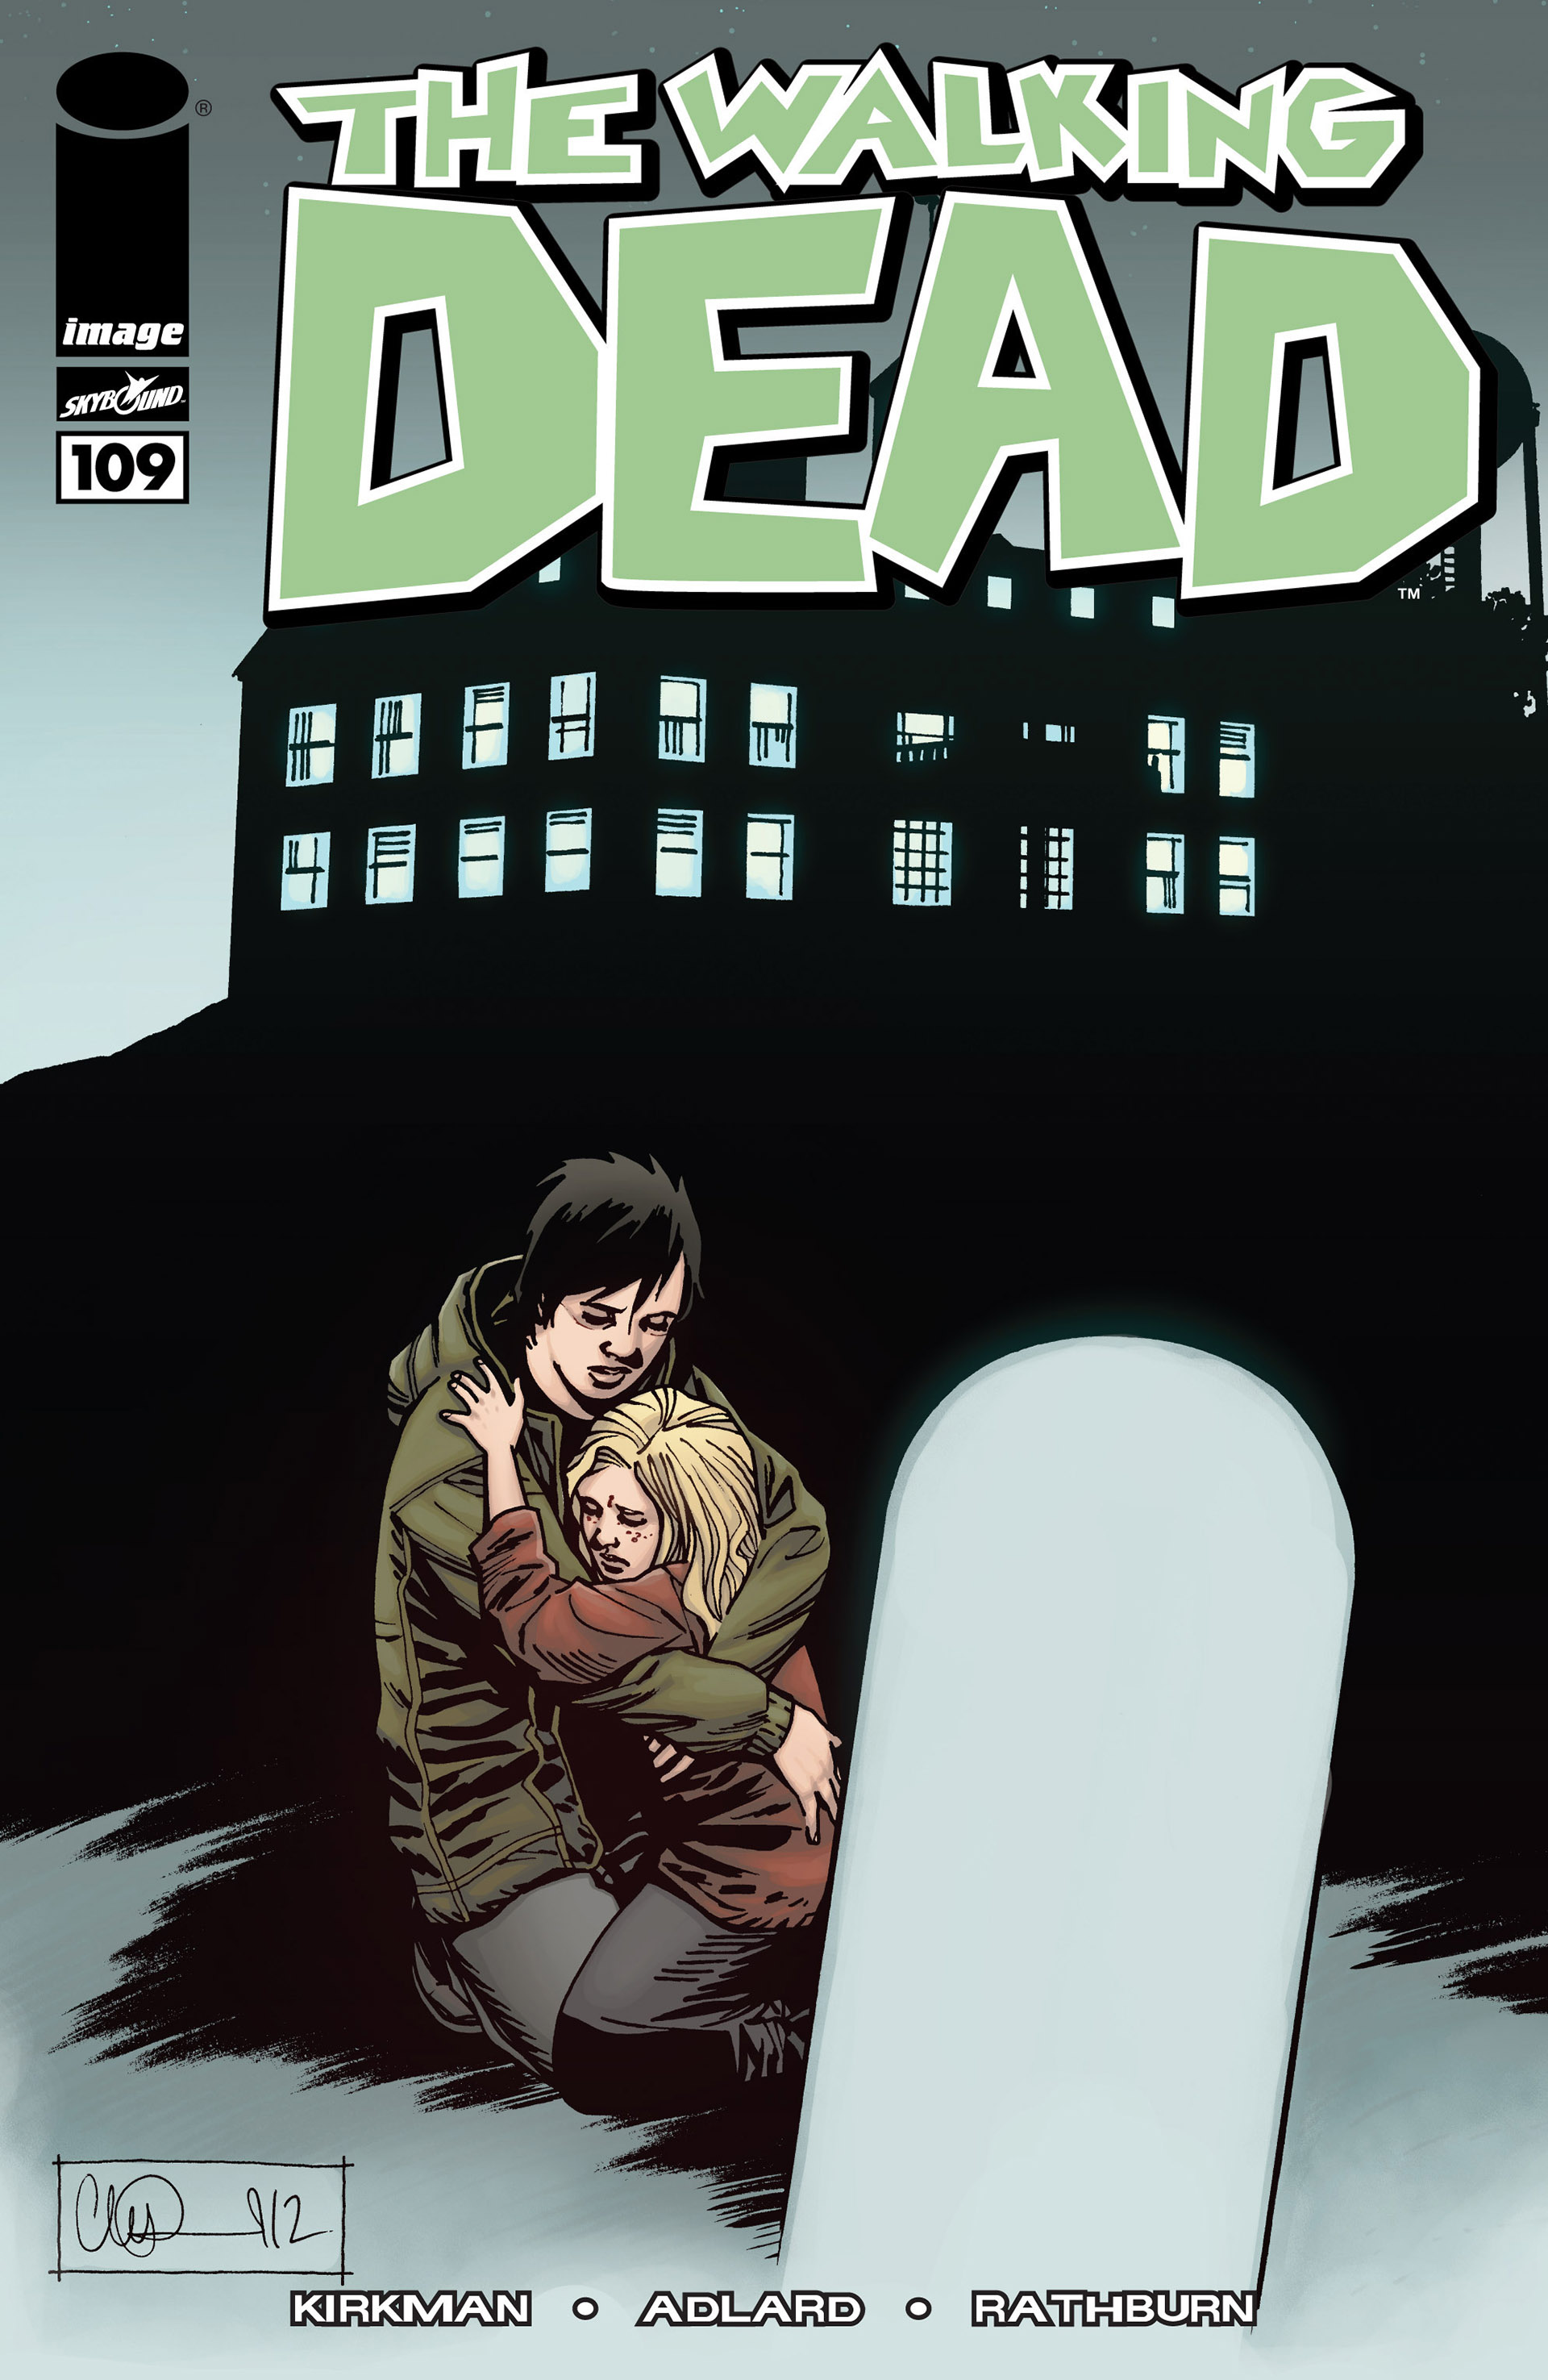 The Walking Dead Issue #109 Page 1